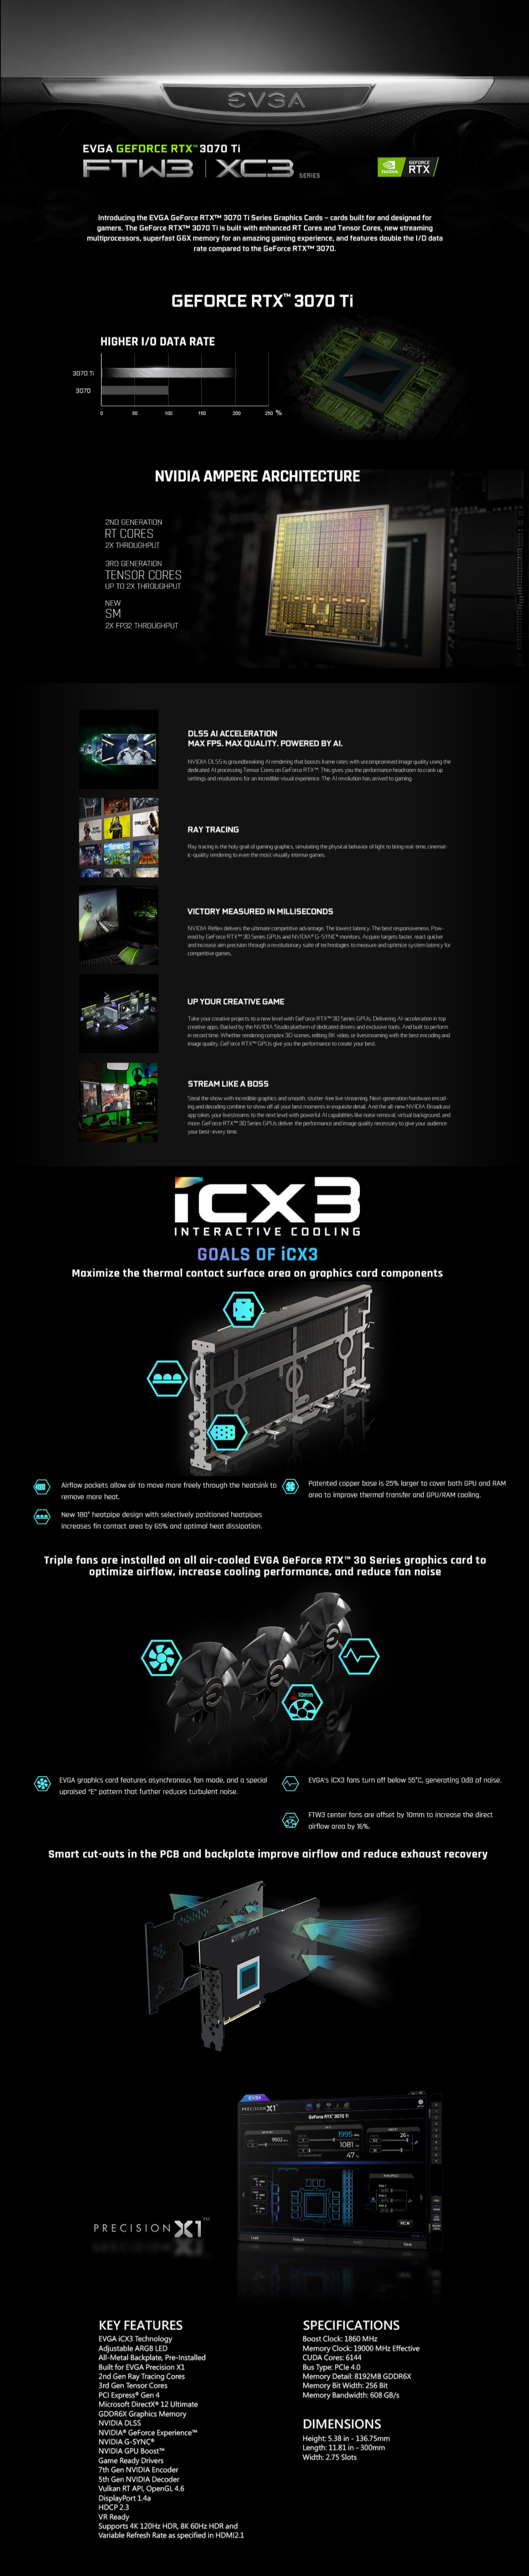 A large marketing image providing additional information about the product eVGA GeForce RTX 3070 Ti FTW3 Ultra 8GB GGDR6X  - Additional alt info not provided